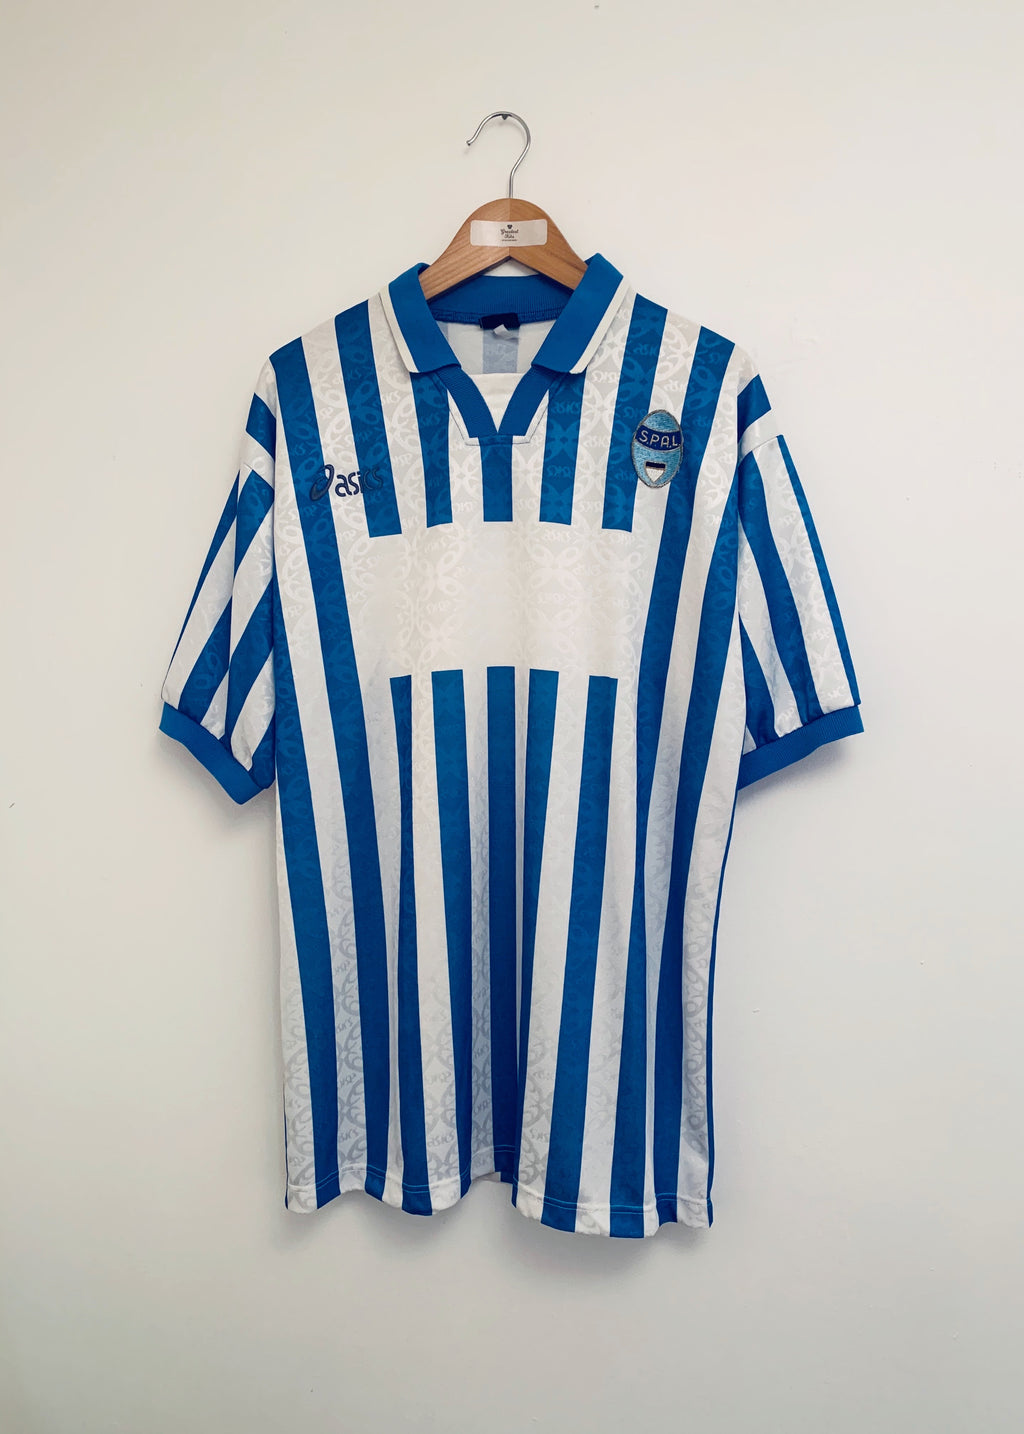 1996/97 SPAL Home Shirt (XL) 9/10